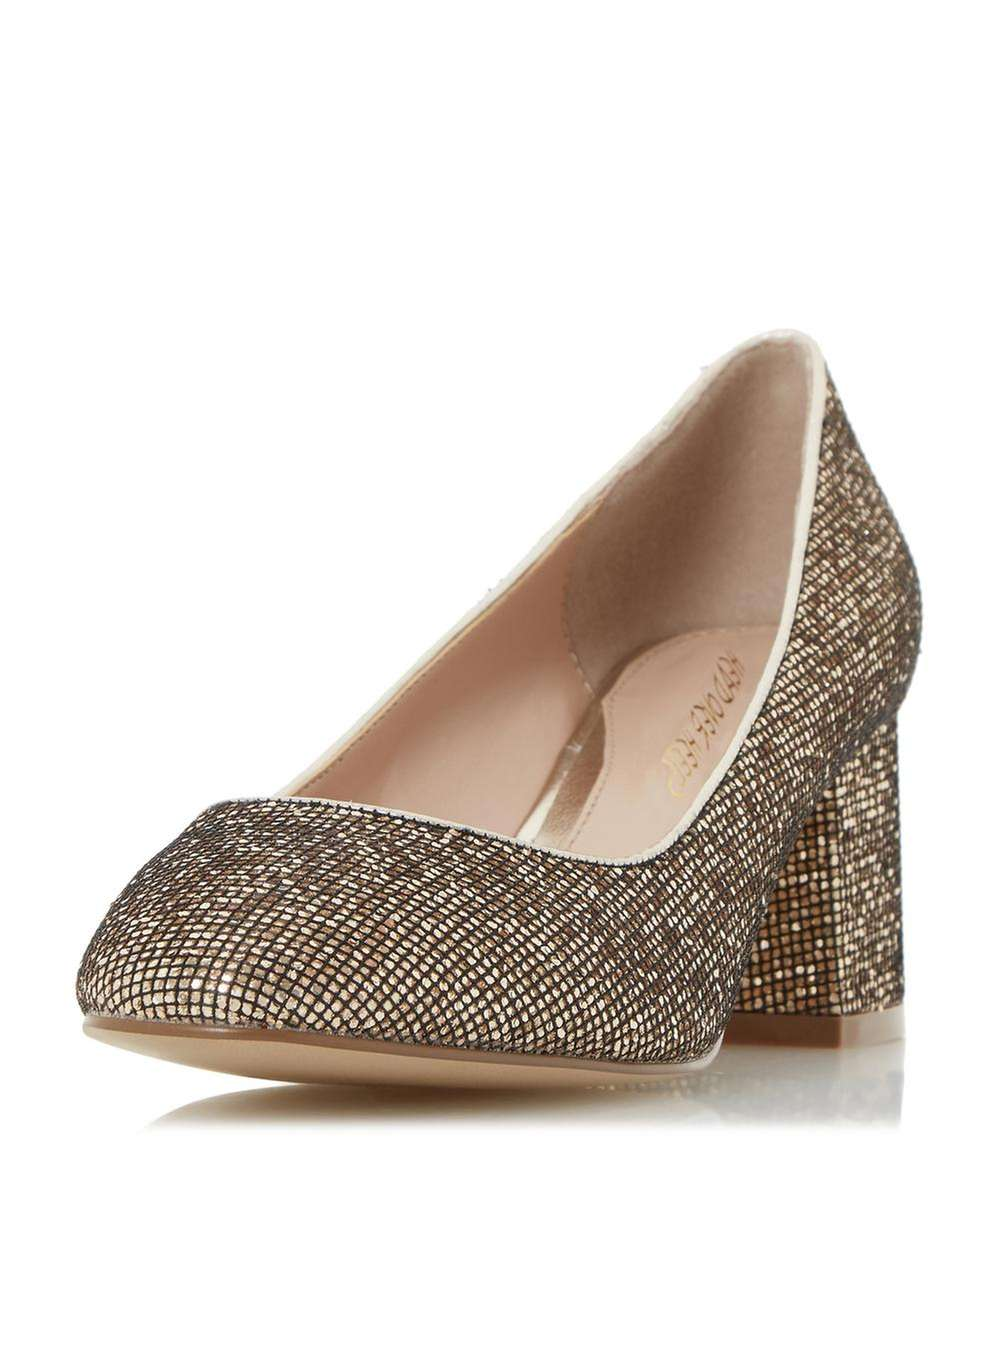 Gold Mid Heel Shoes Znu6rF5K